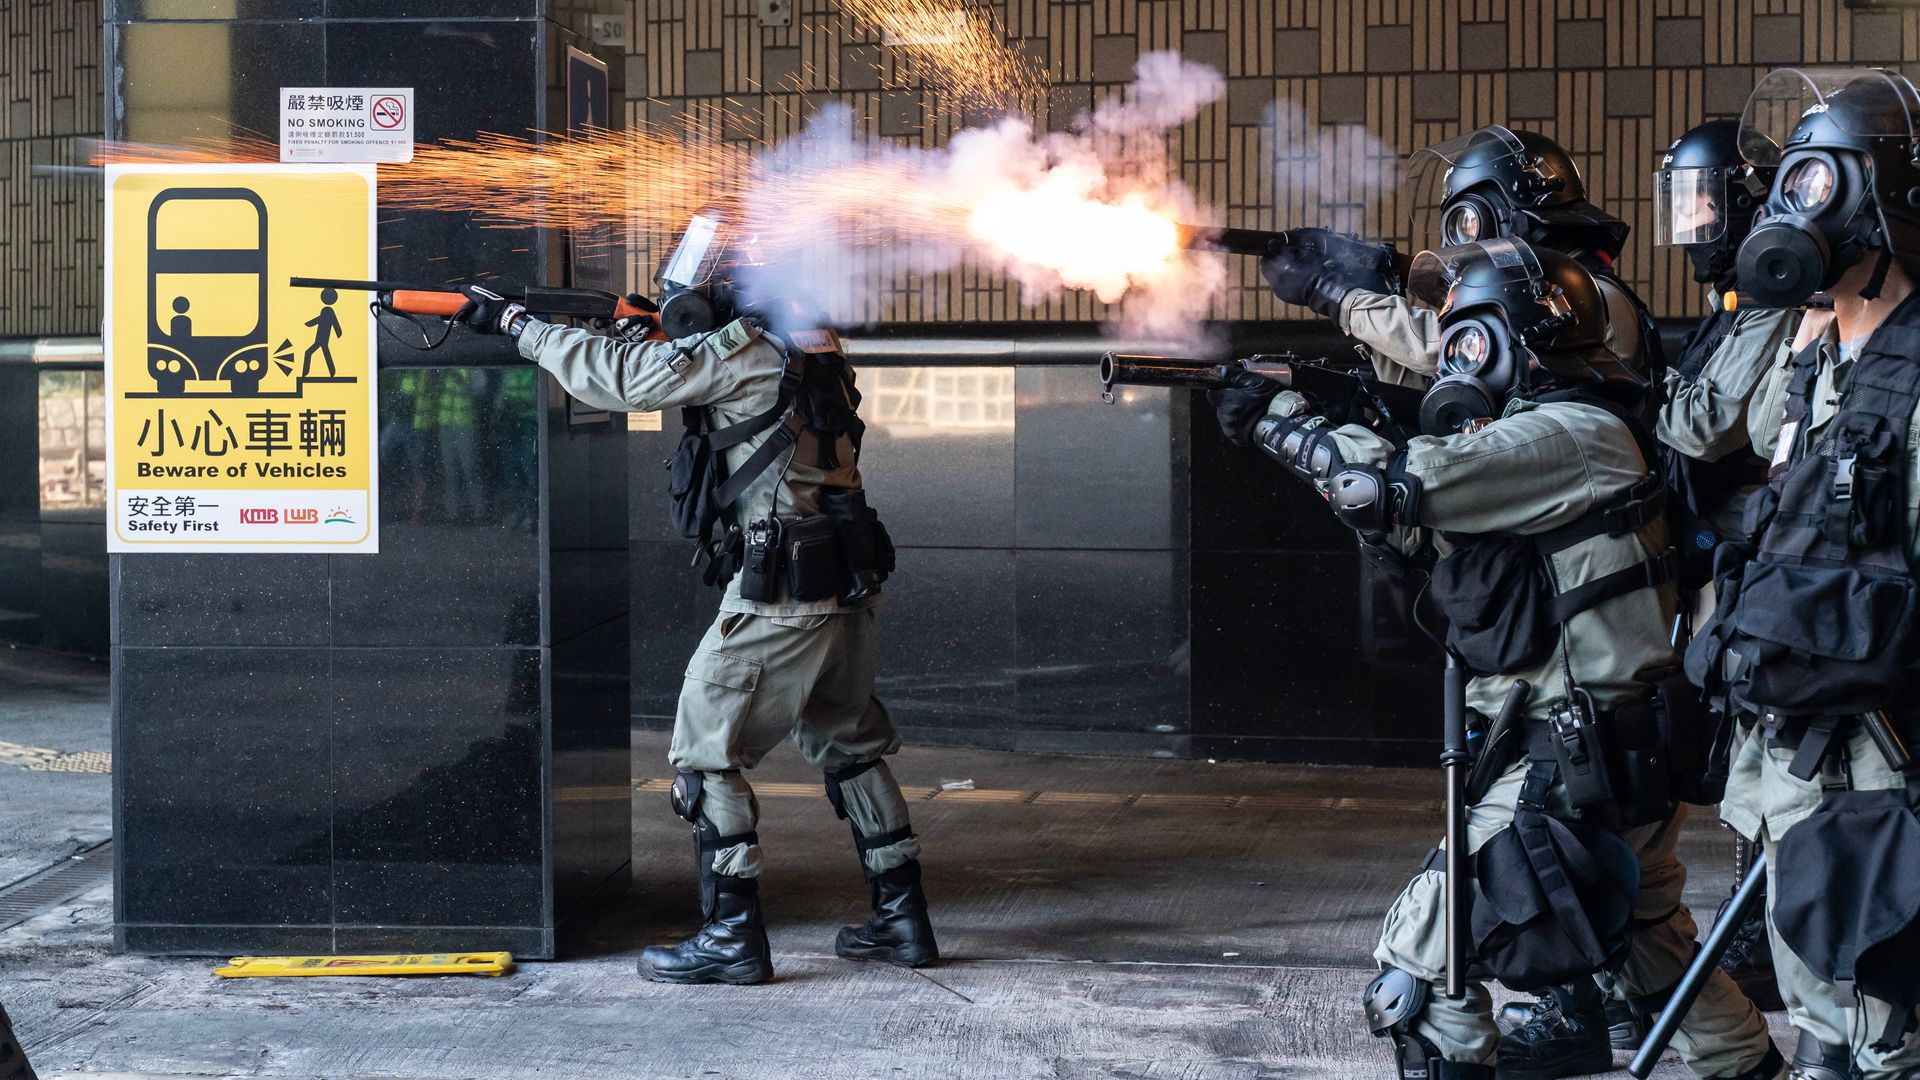 Riot police fire teargas and rubber bullets as protesters attempt to leave The Hong Kong Poytechnic University on November 18, 2019 in Hong Kong